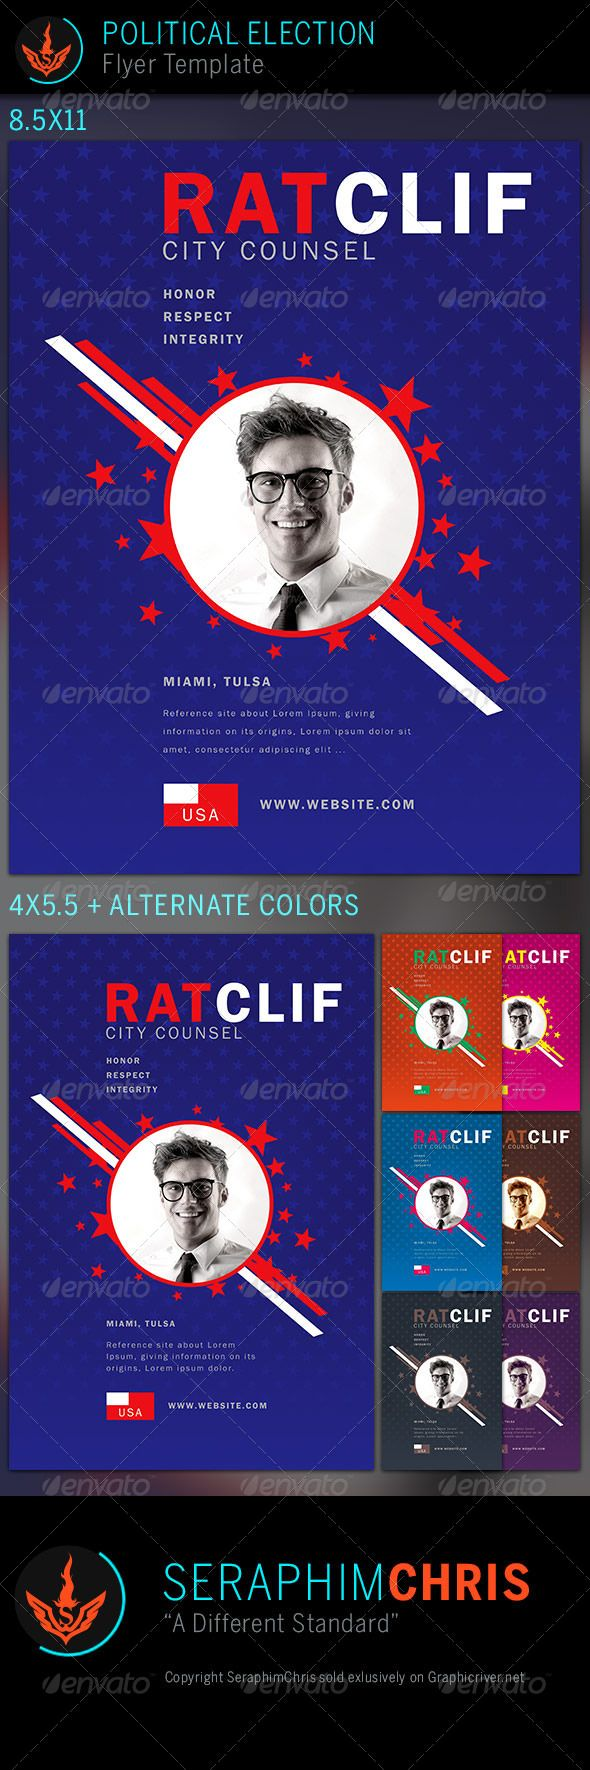 voting flyer templates free - 16 best sinage and product mock up templates images on